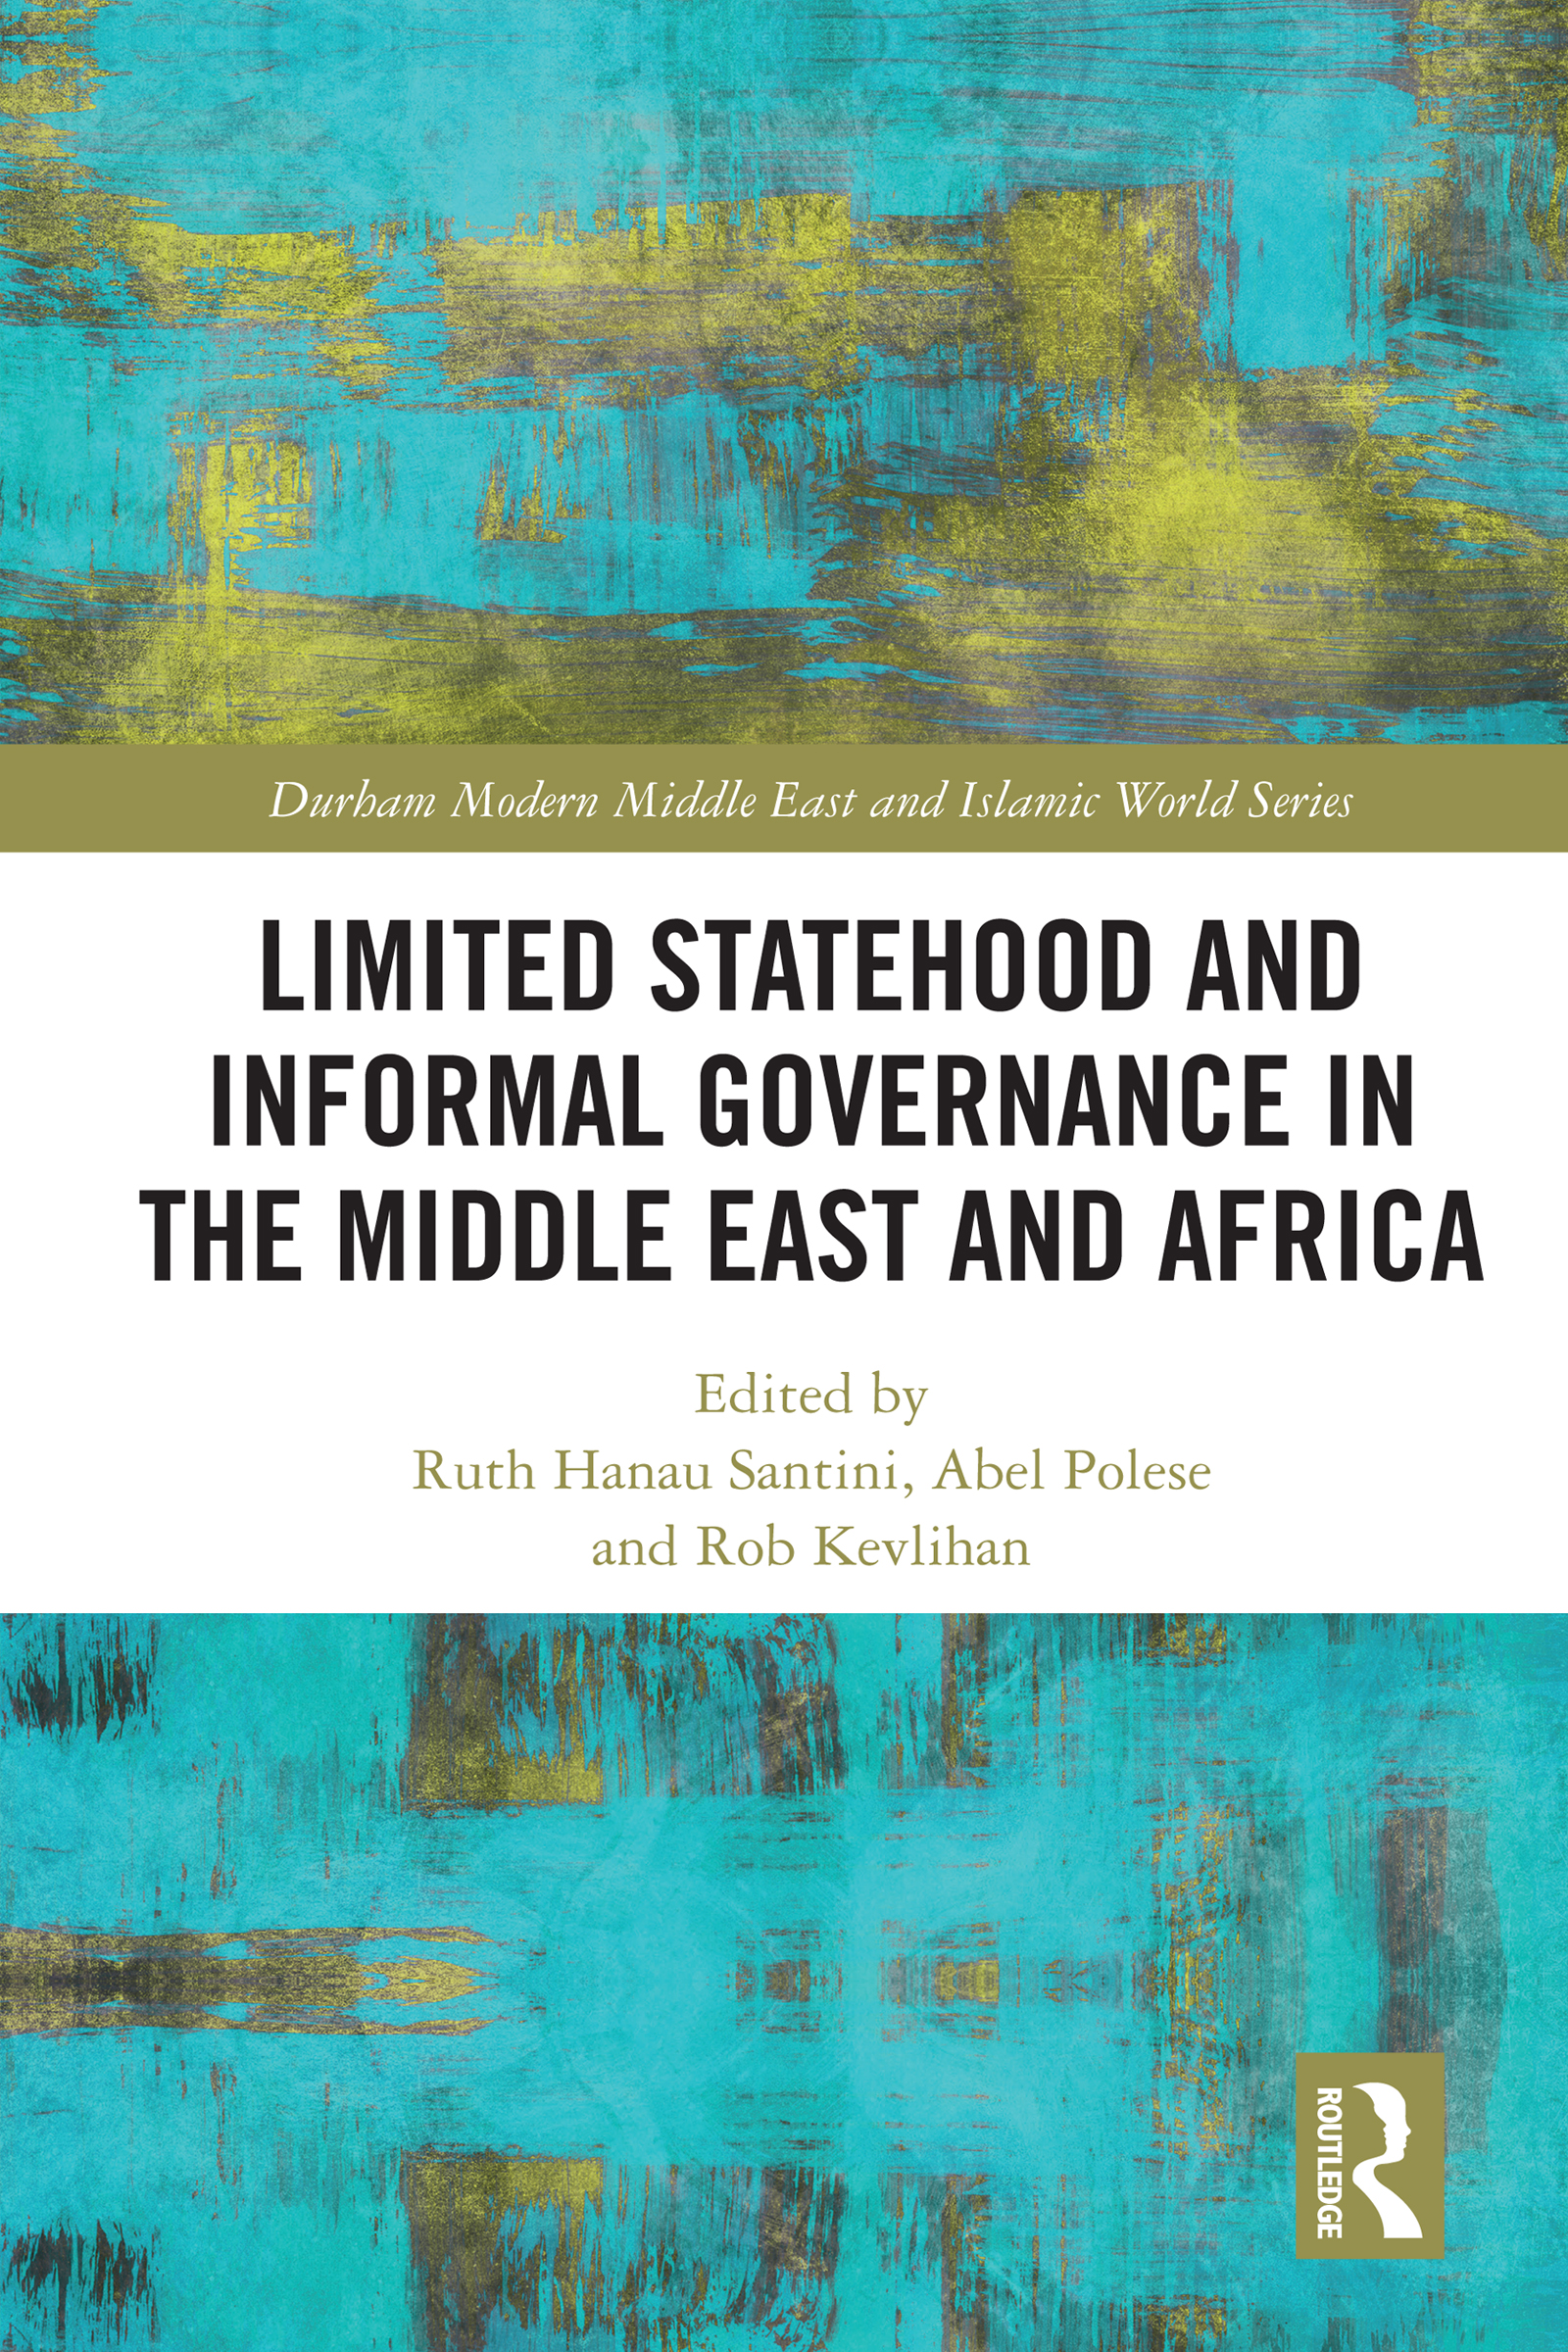 Limited Statehood and Informal Governance in the Middle East and Africa